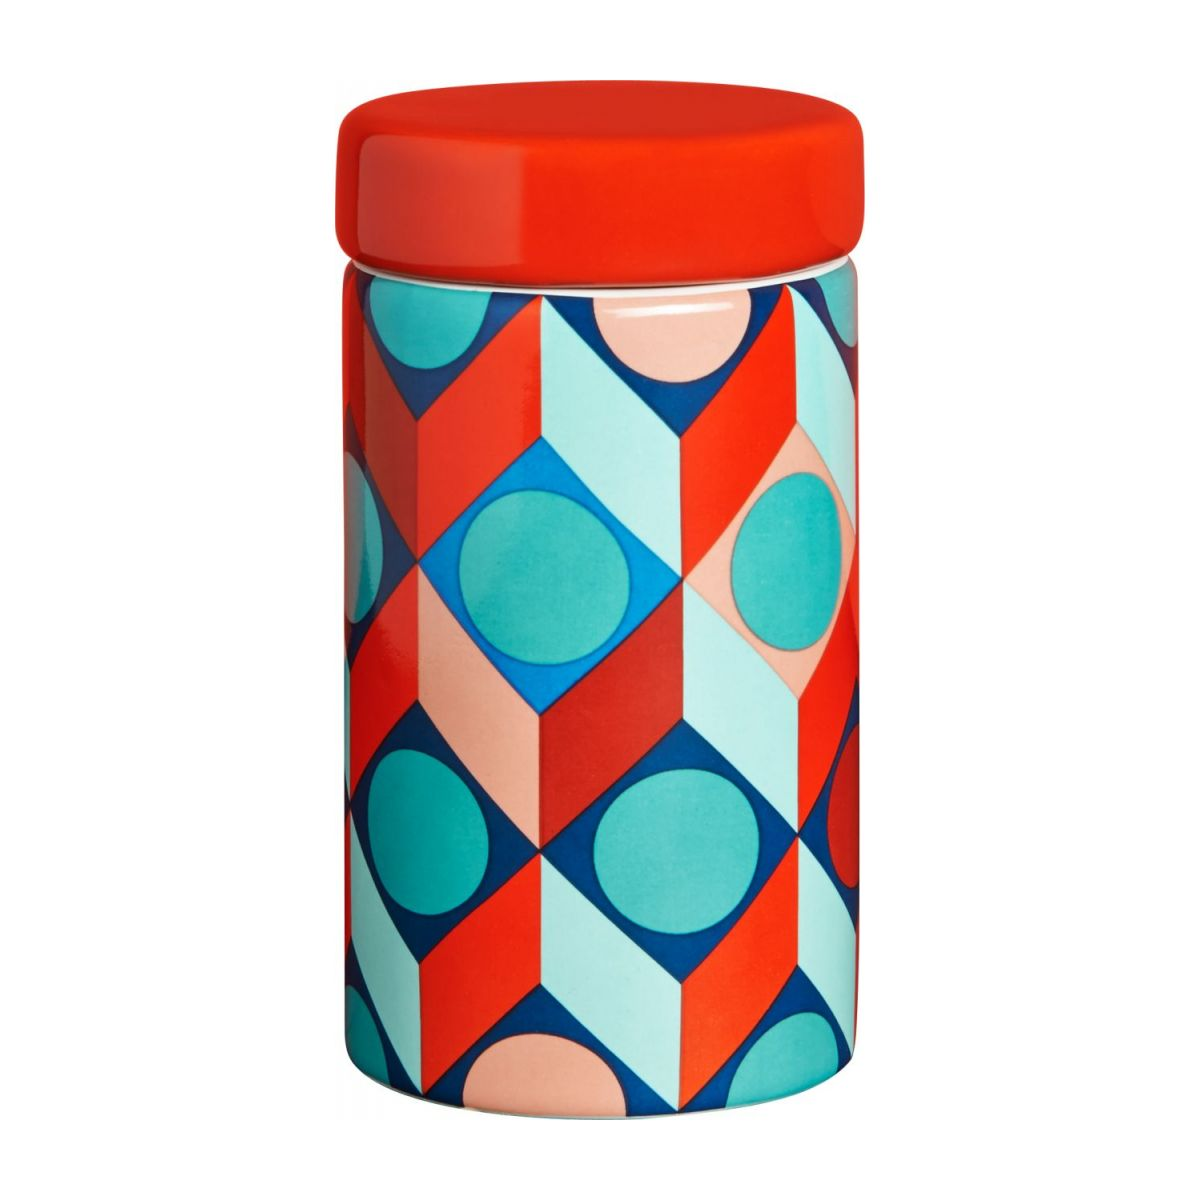 Spice jar with patterns n°1